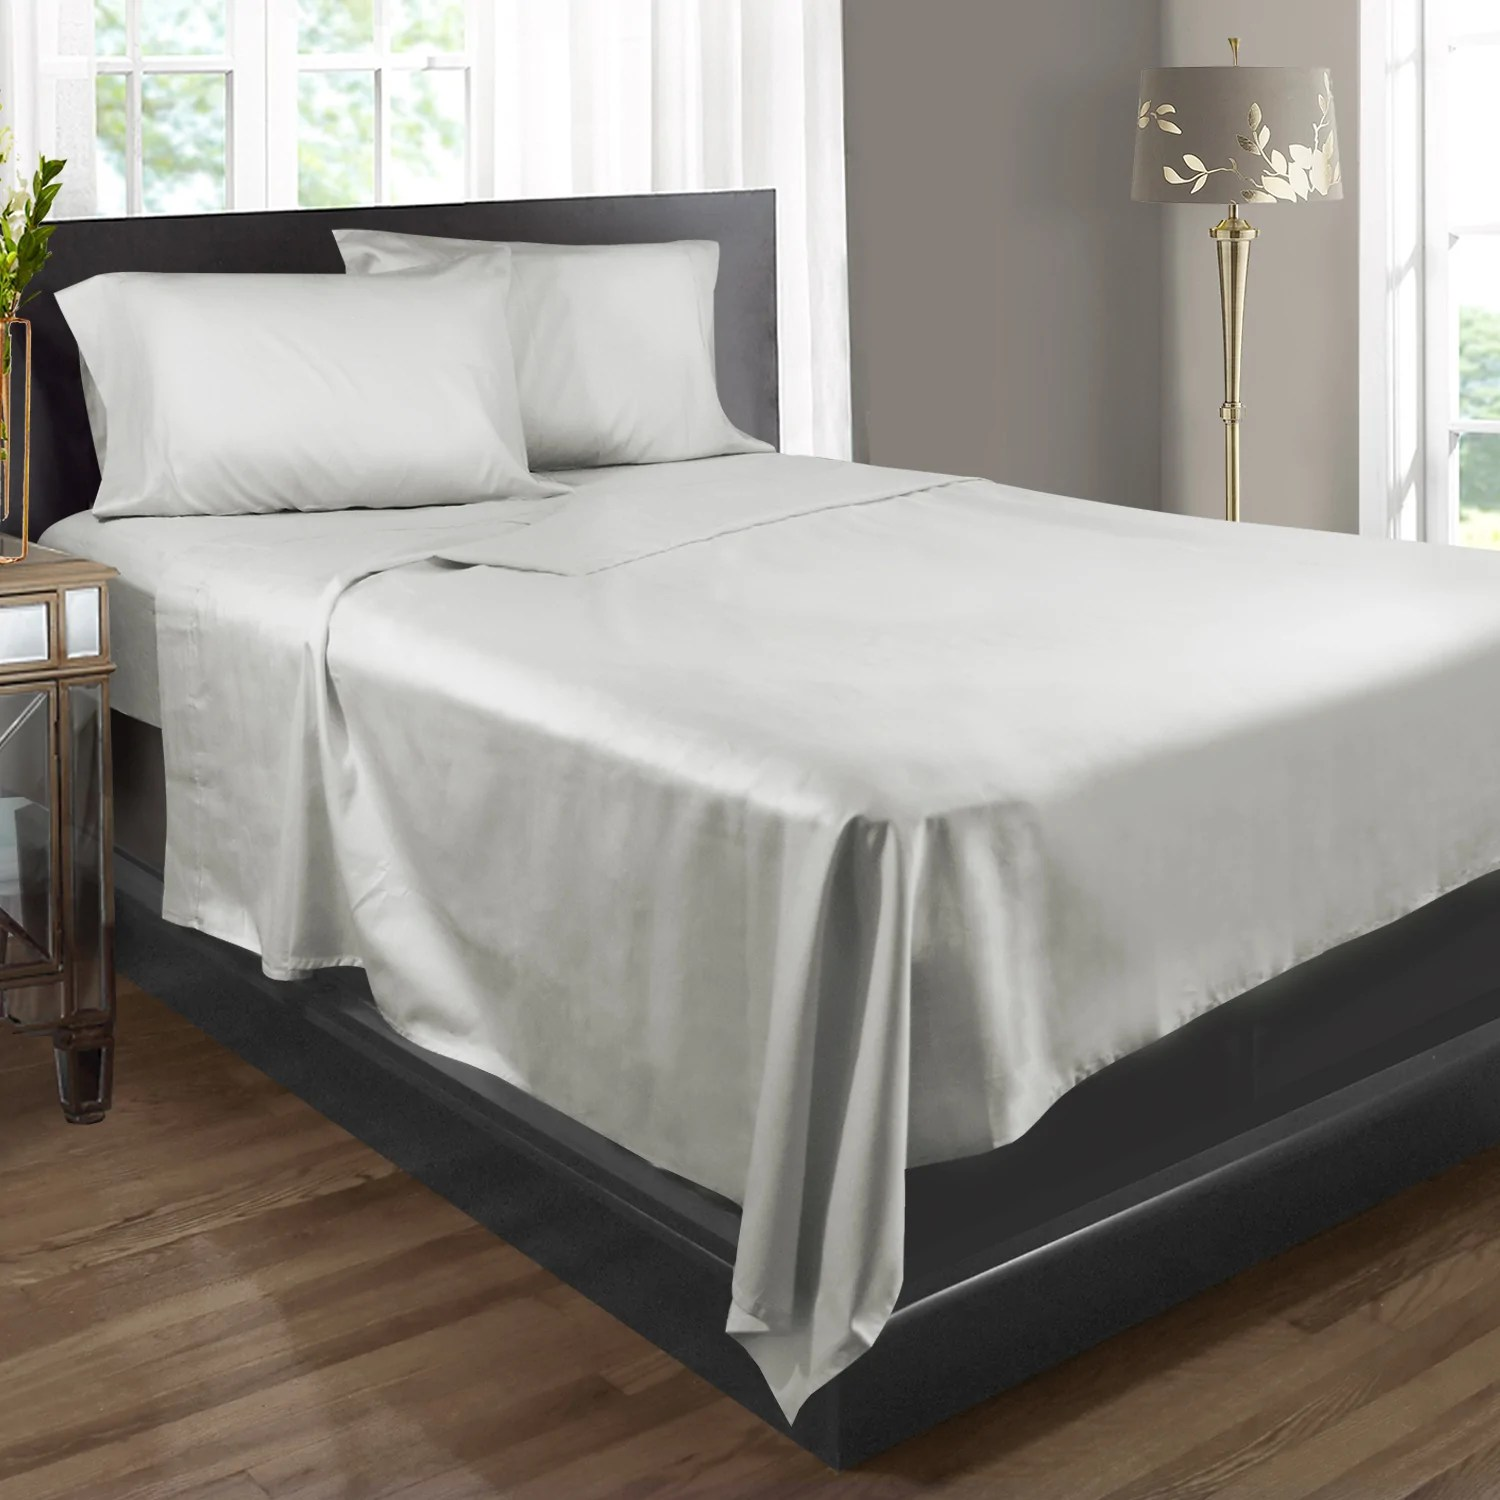 100 Egyptian Cotton Sheets 400 Thread Count 100 Egyptian Cotton 4 Piece Bed Sheet Set